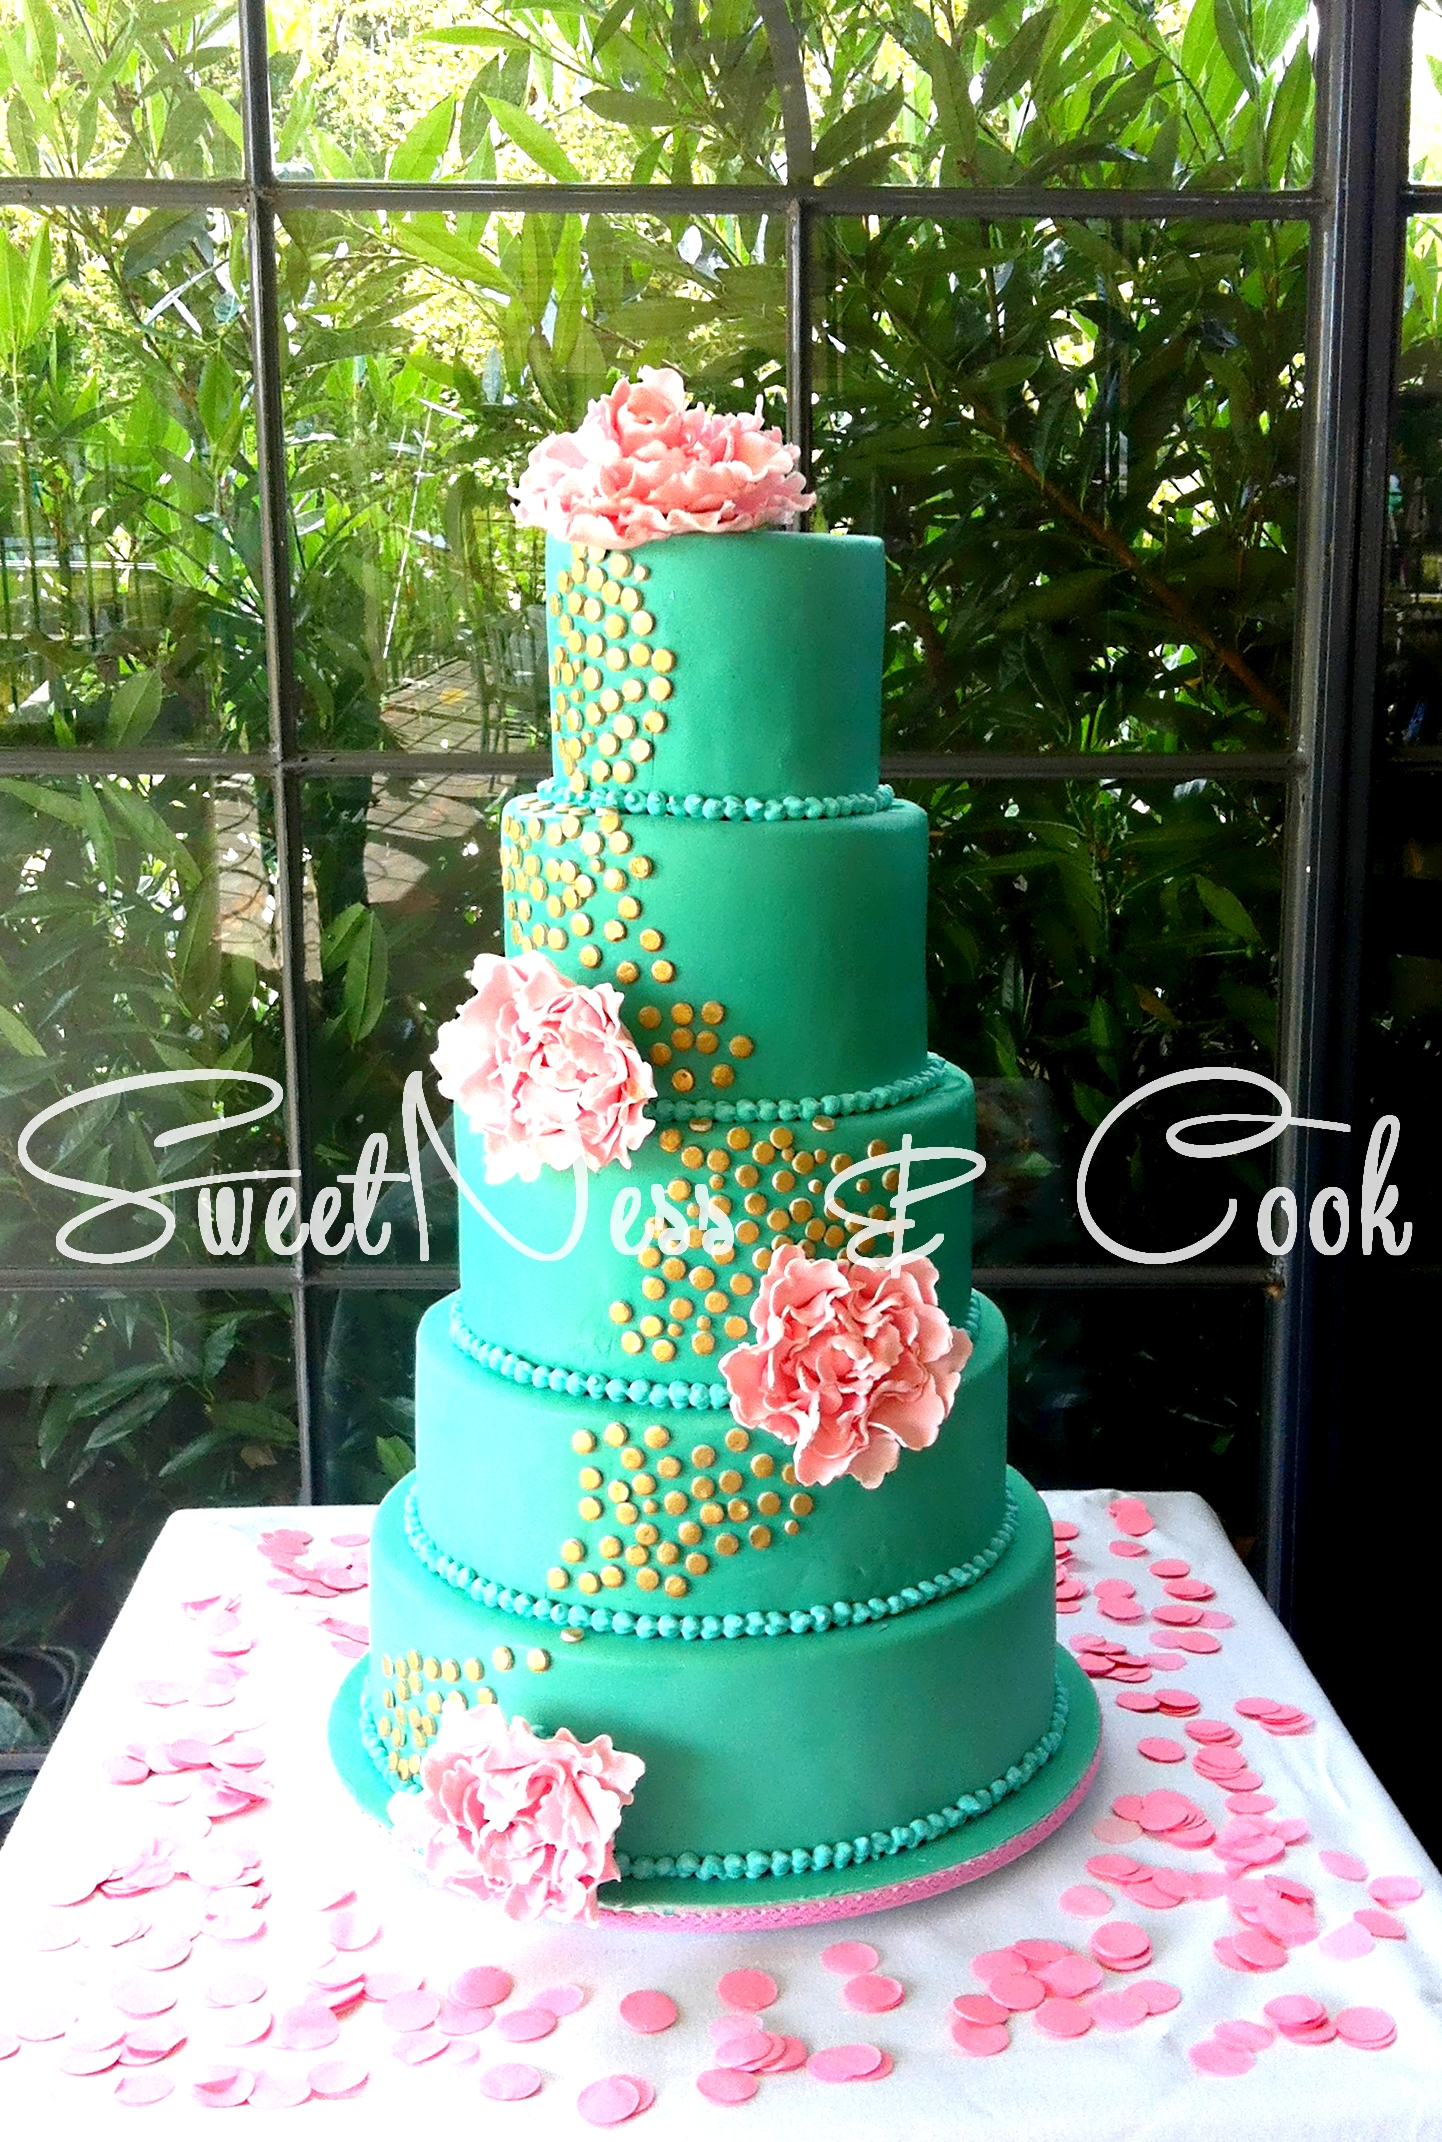 Wedding Cake Emeraude